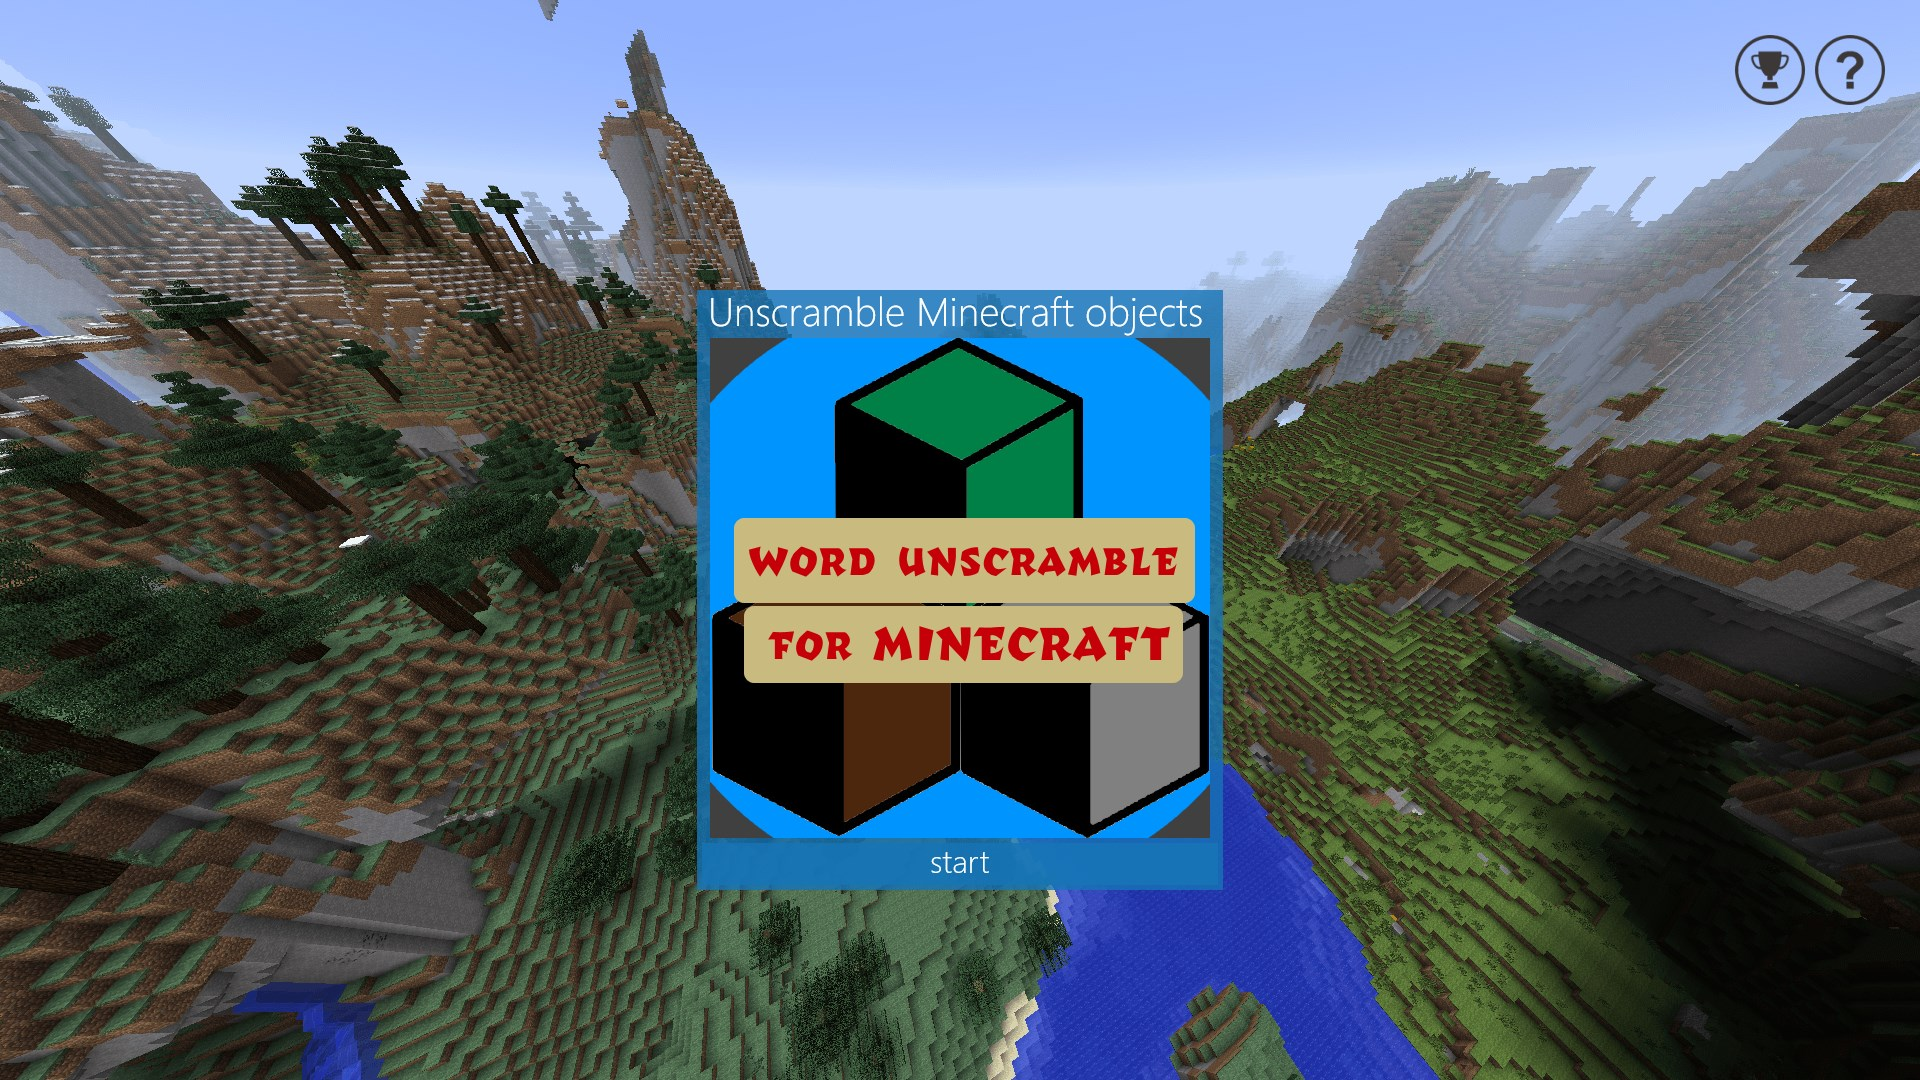 Word Unscramble for Minecraft for Windows 10